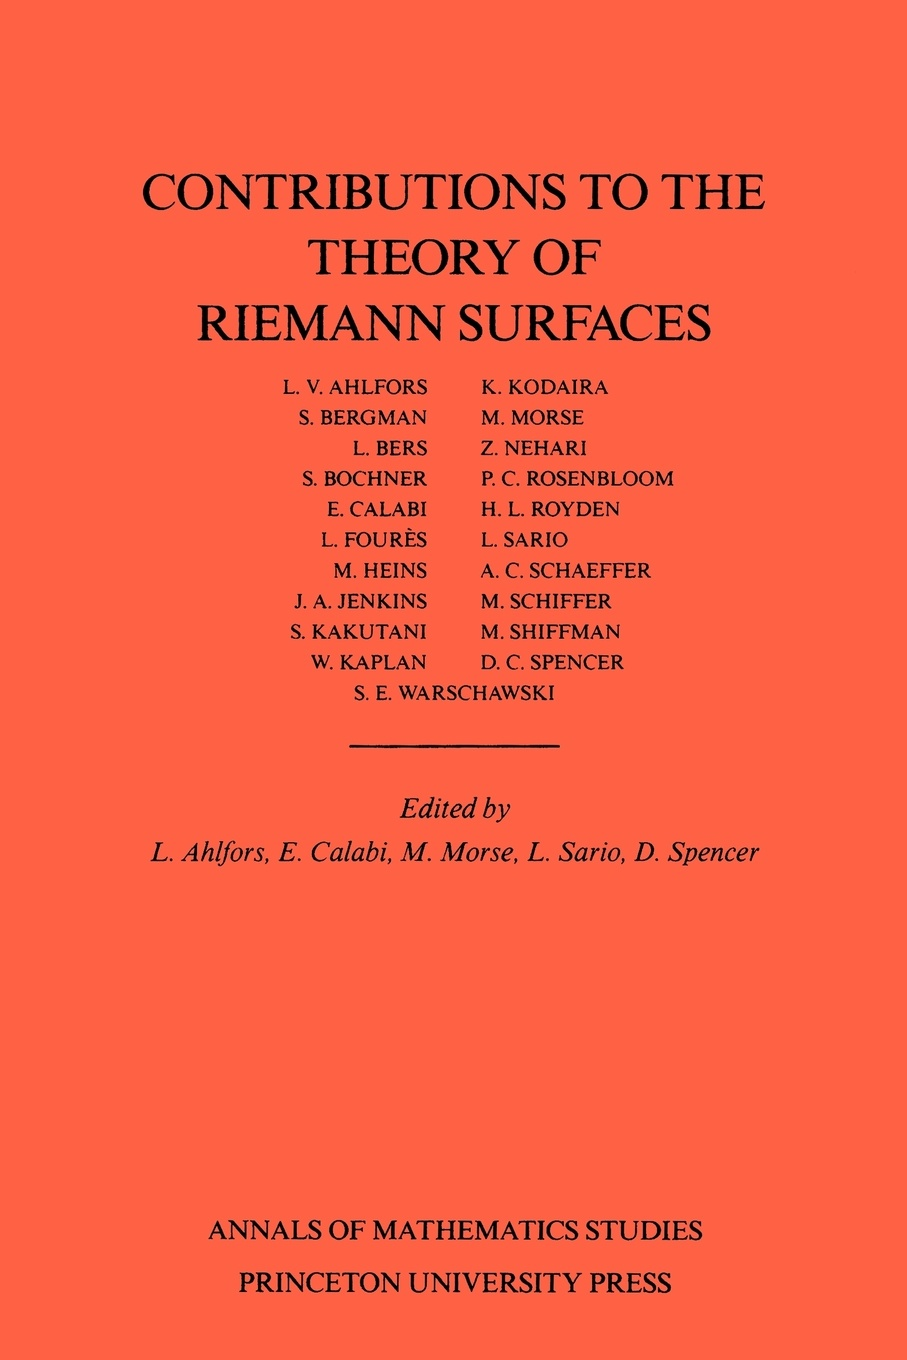 Contributions to the Theory of Riemann Surfaces. (AM-30), Volume 30 norman l alling newcomb greenleaf foundations of the theory of klein surfaces